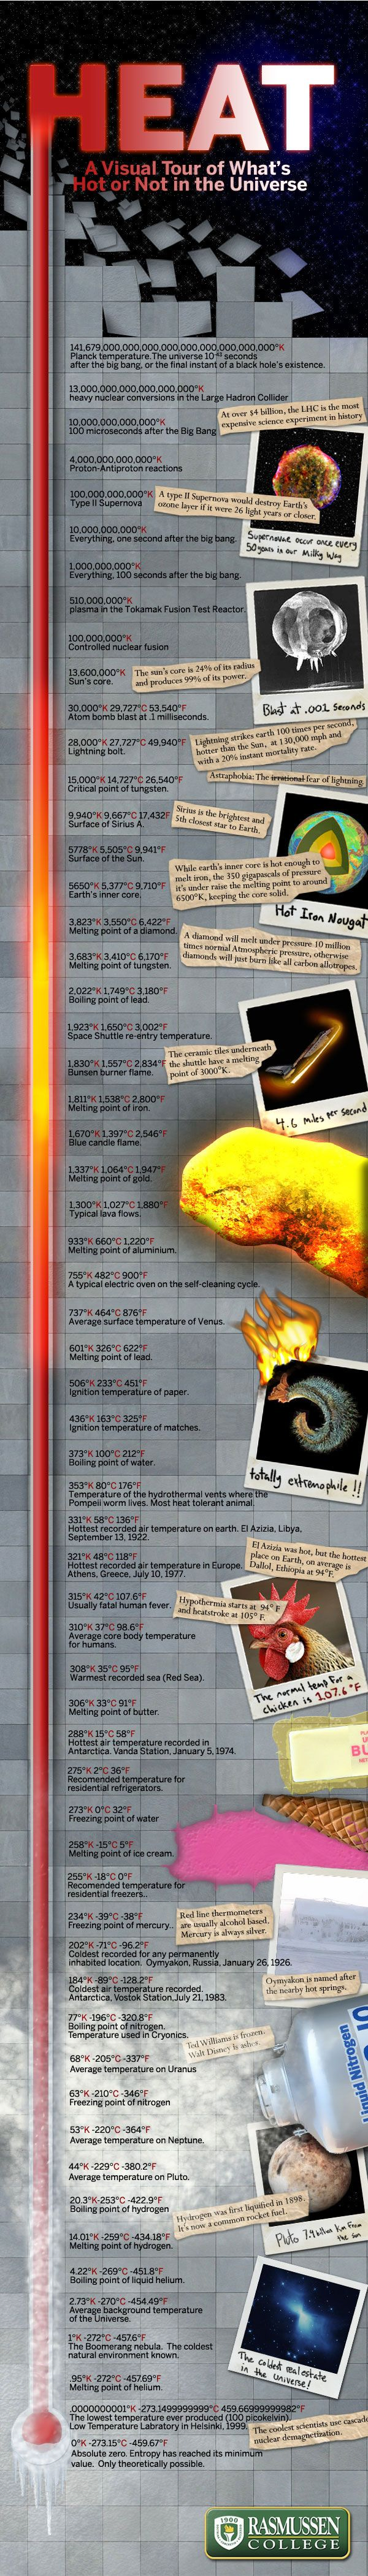 Heat: A Visual Tour of What's Hot or Not in the Universe